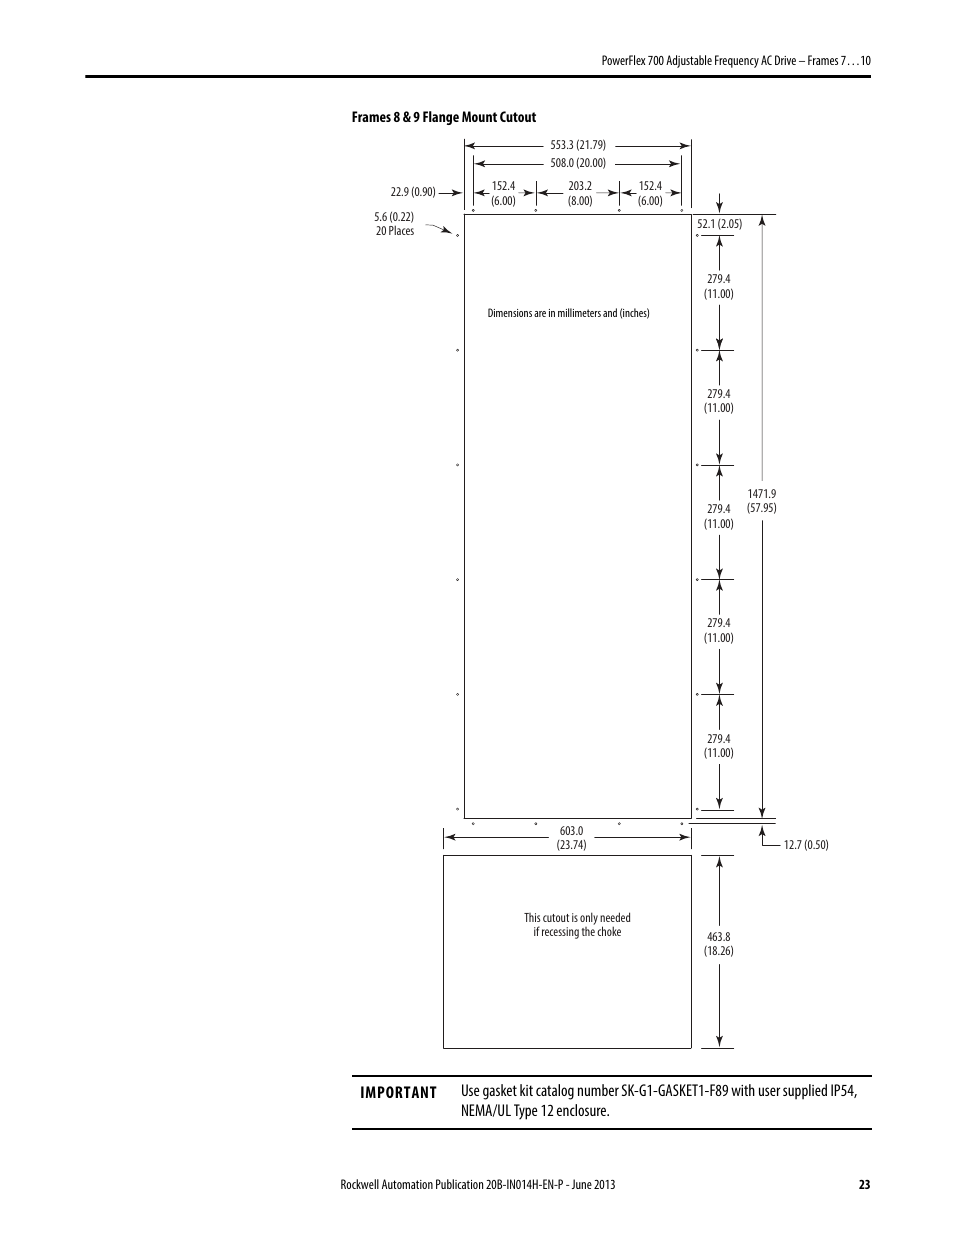 Powerflex 700 Frame 6 Wiring Diagram Libraries Rockwell Library